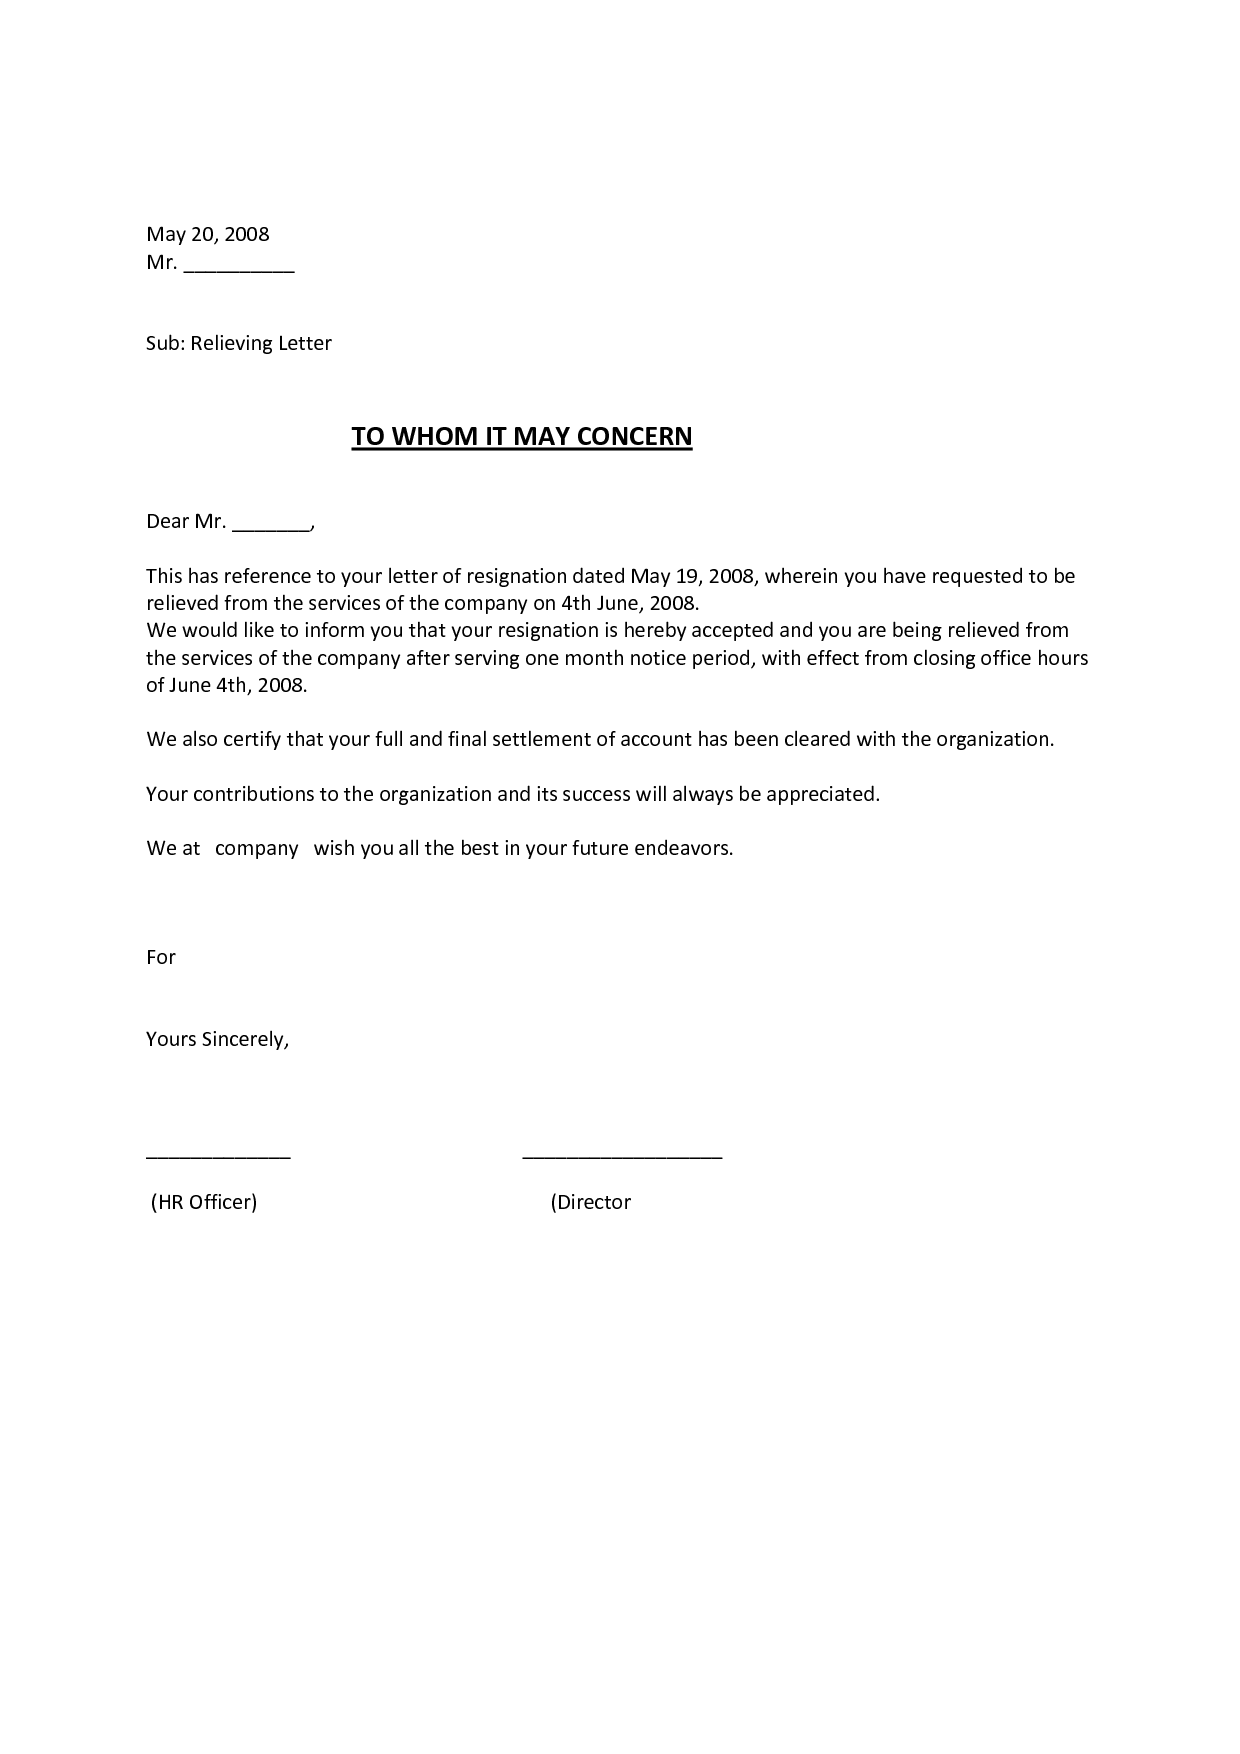 Relieving letter format for employee free download aba employee relieving letter a relieving letter is meant to relieve the employee who is yadclub